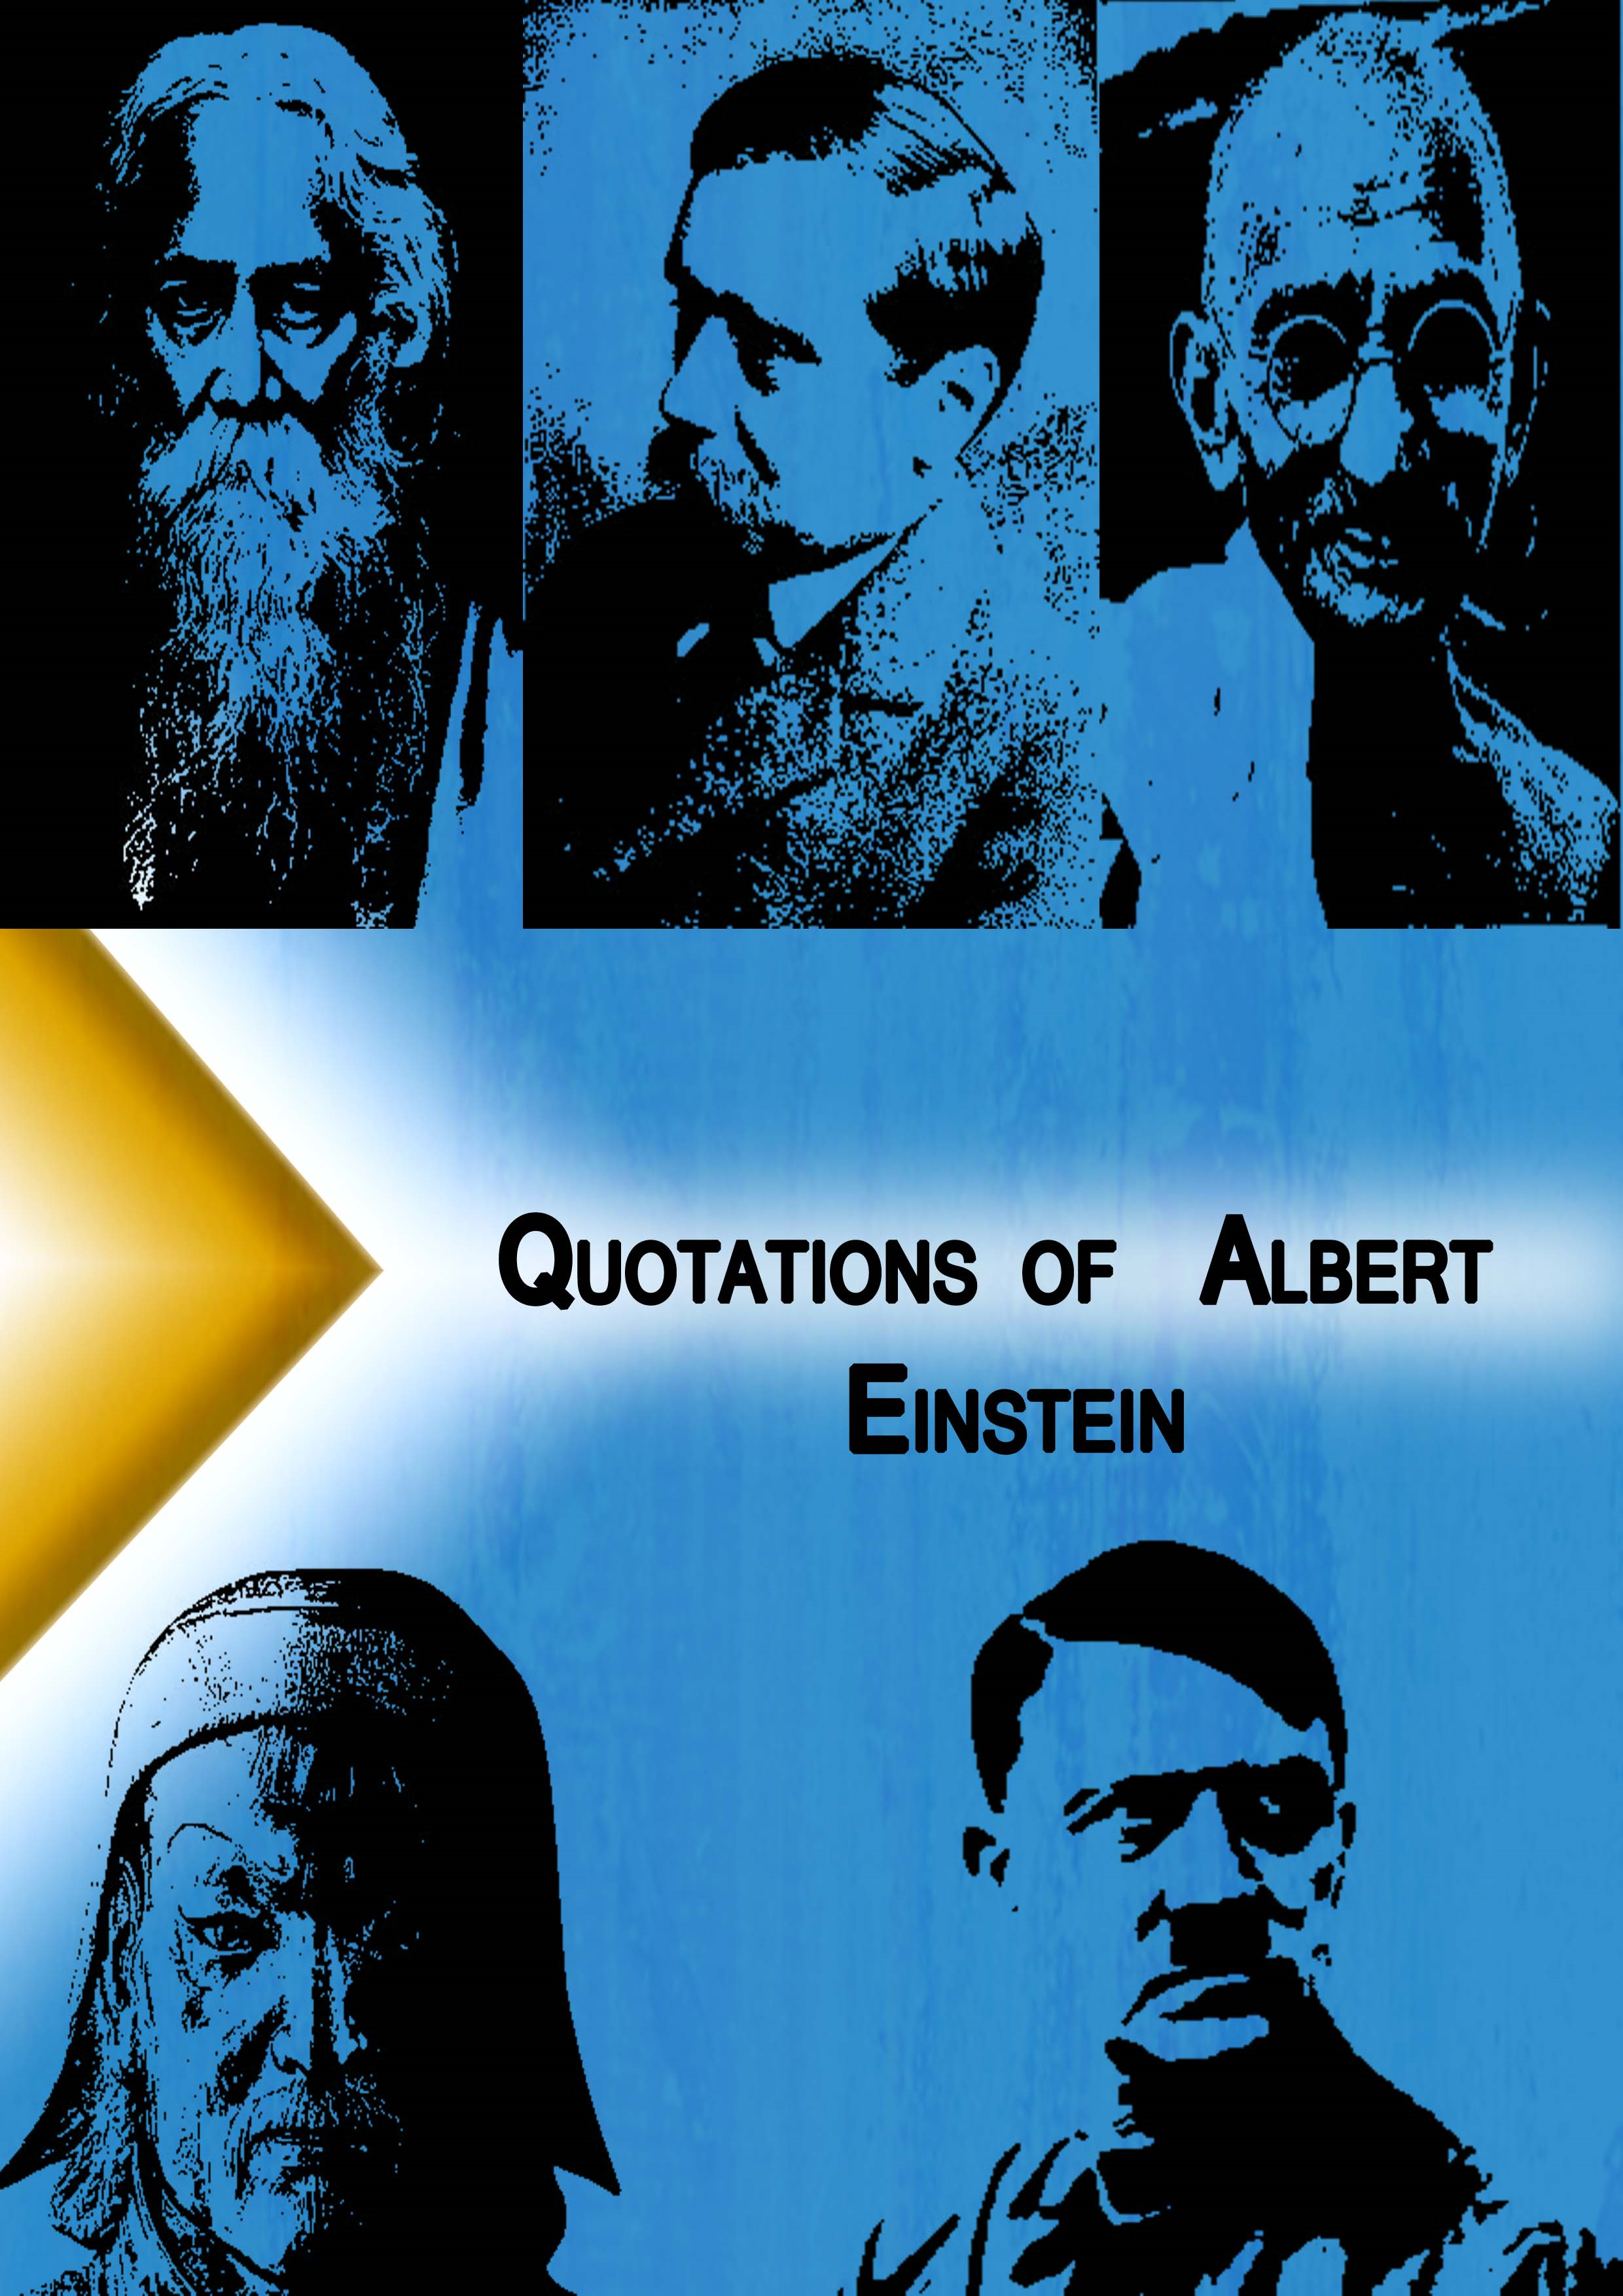 Qoutations of Albert Einstein